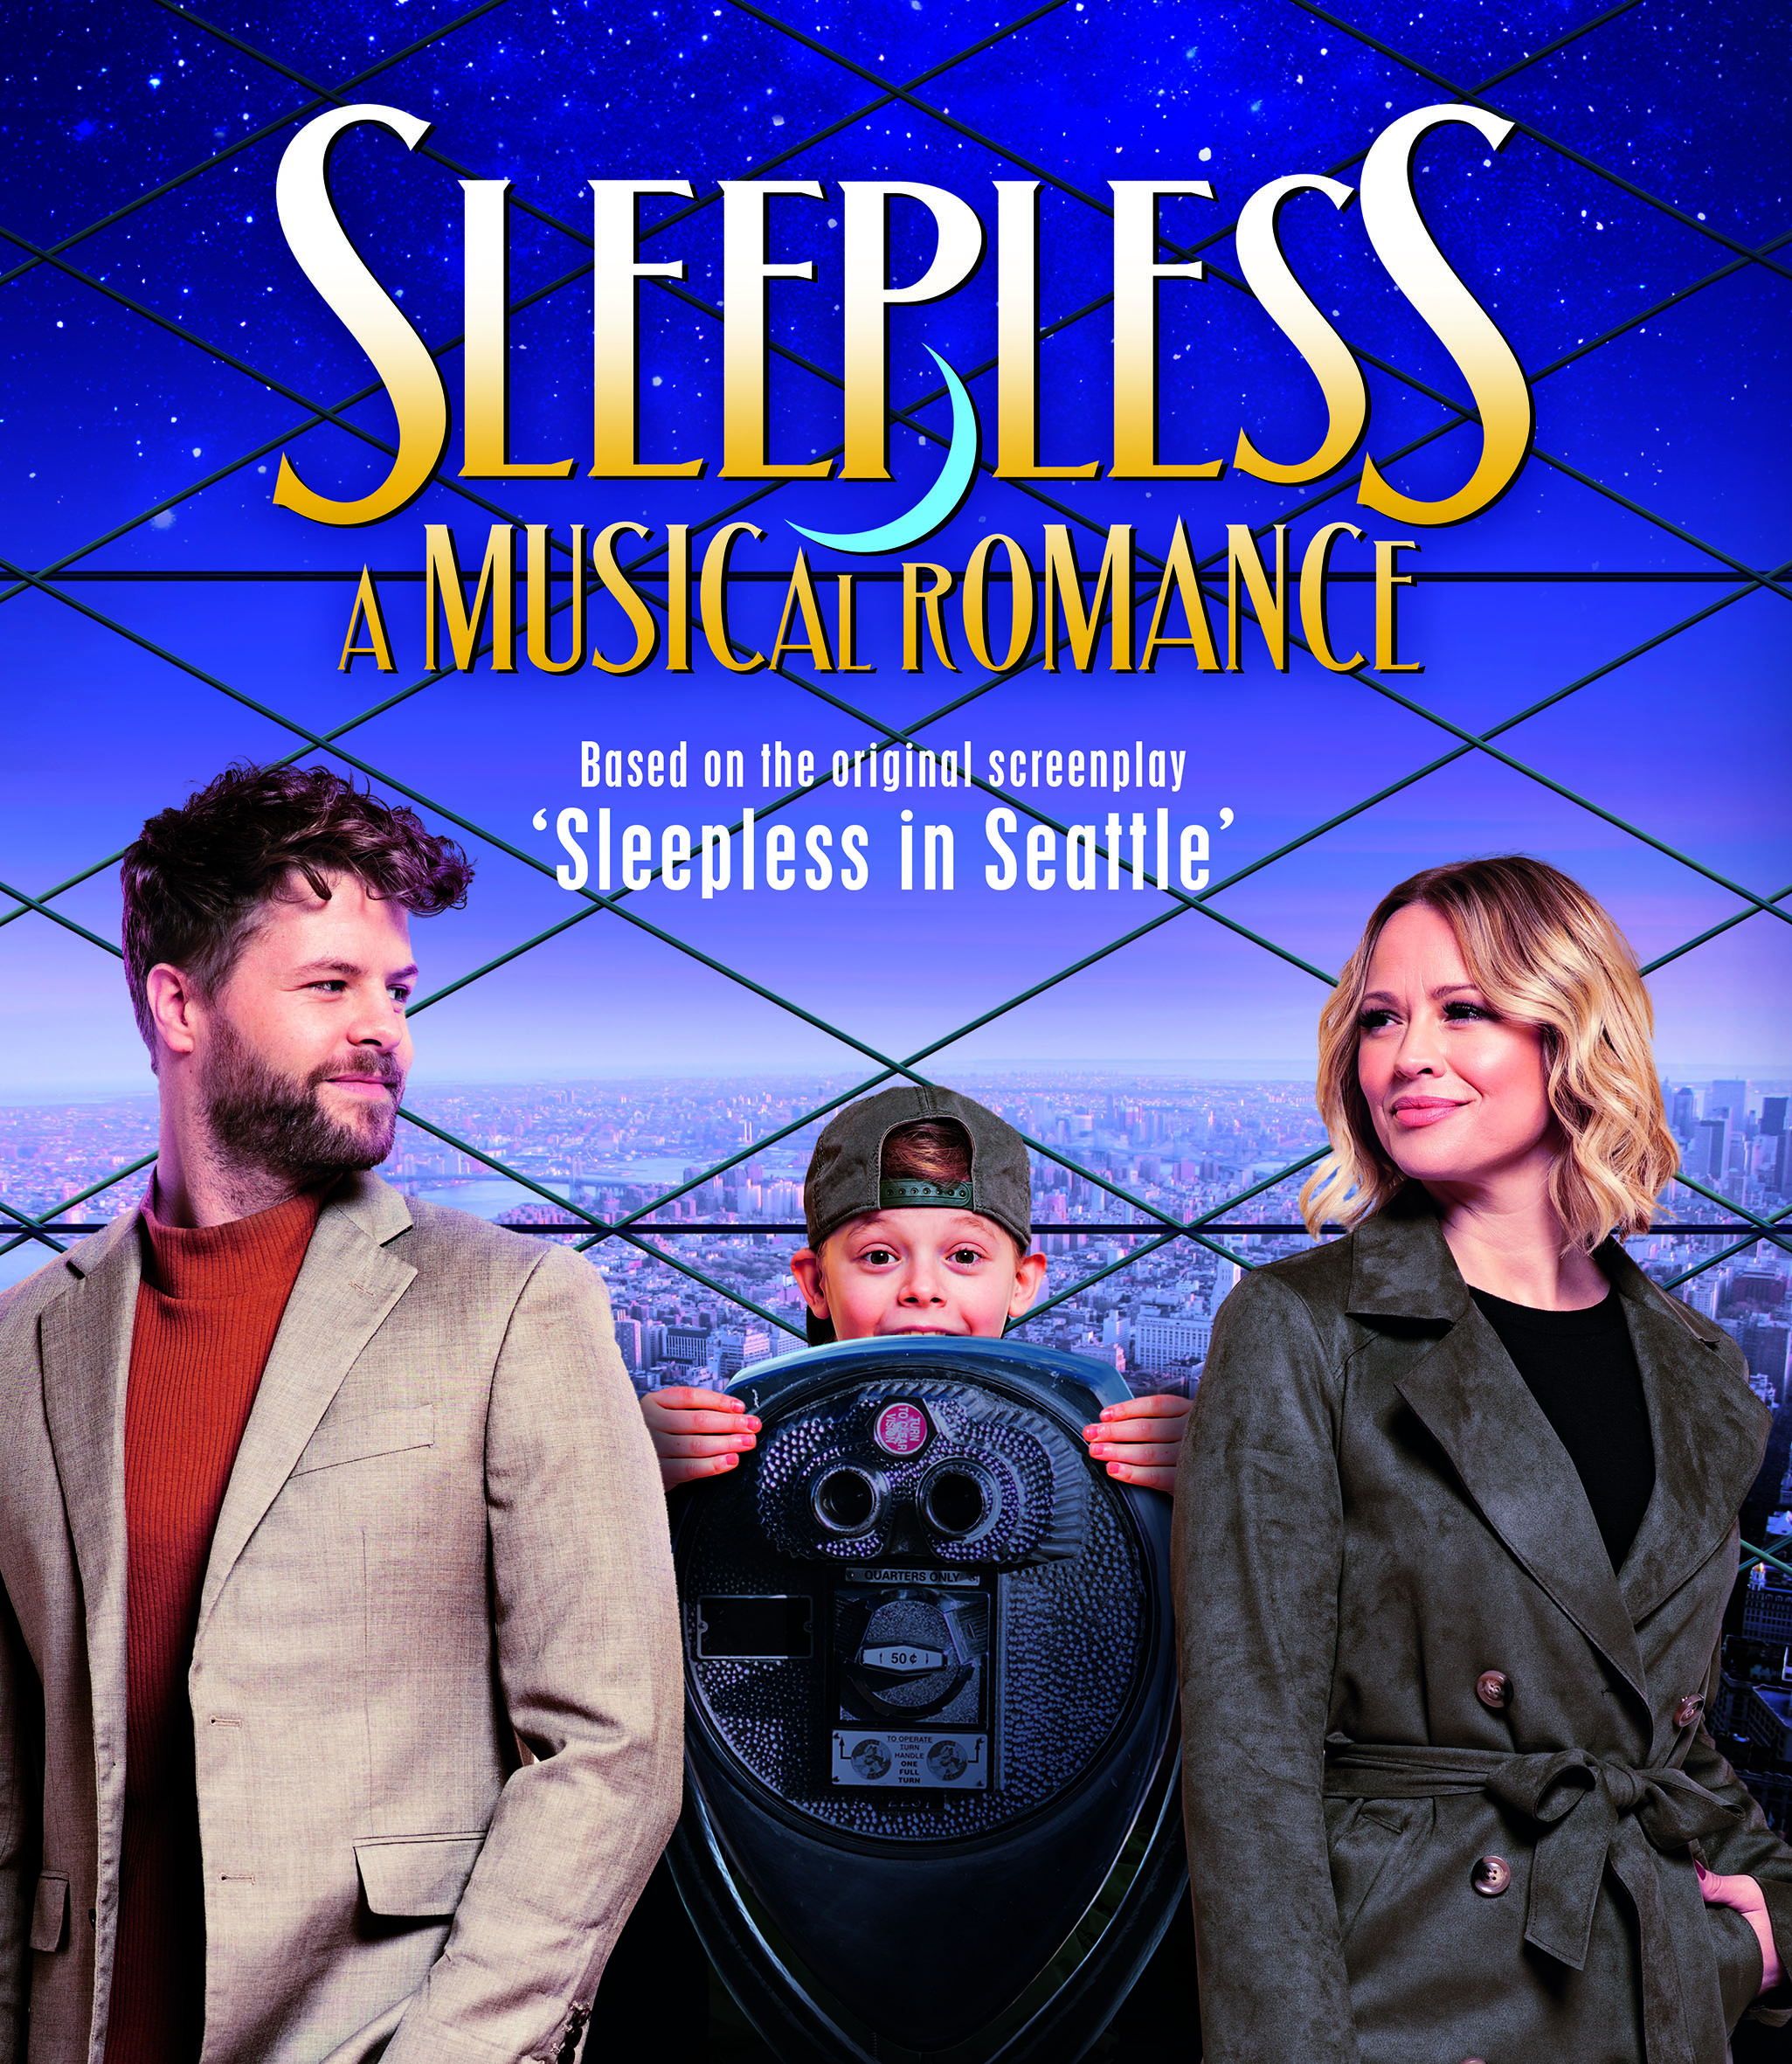 Poster for Sleepless, A Musical Romance